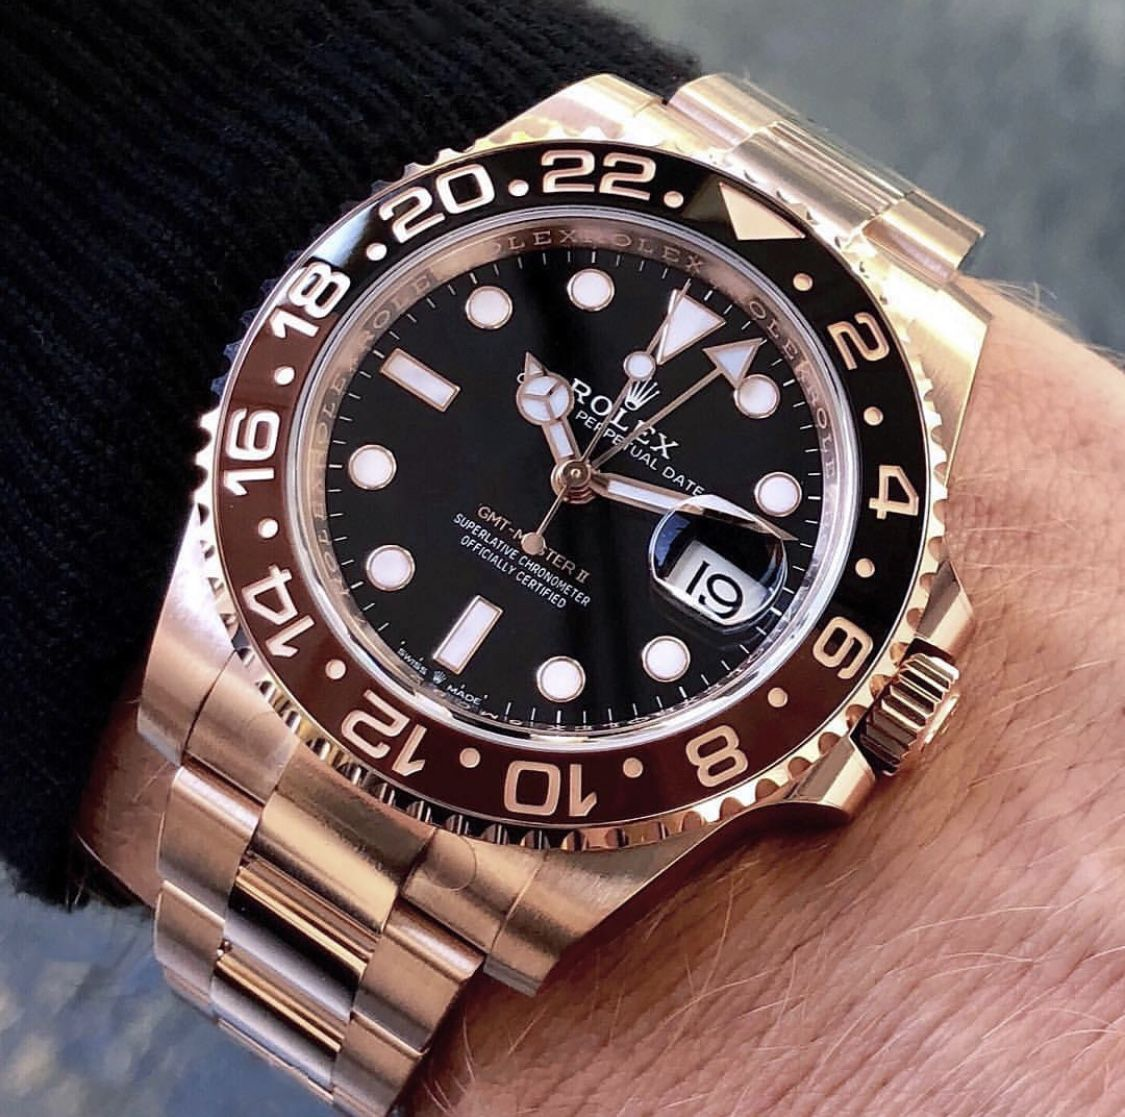 2018 Gmt Master Ii In Rose Gold 37 500 Rolex Watches Luxury Watches For Men Rolex Gmt